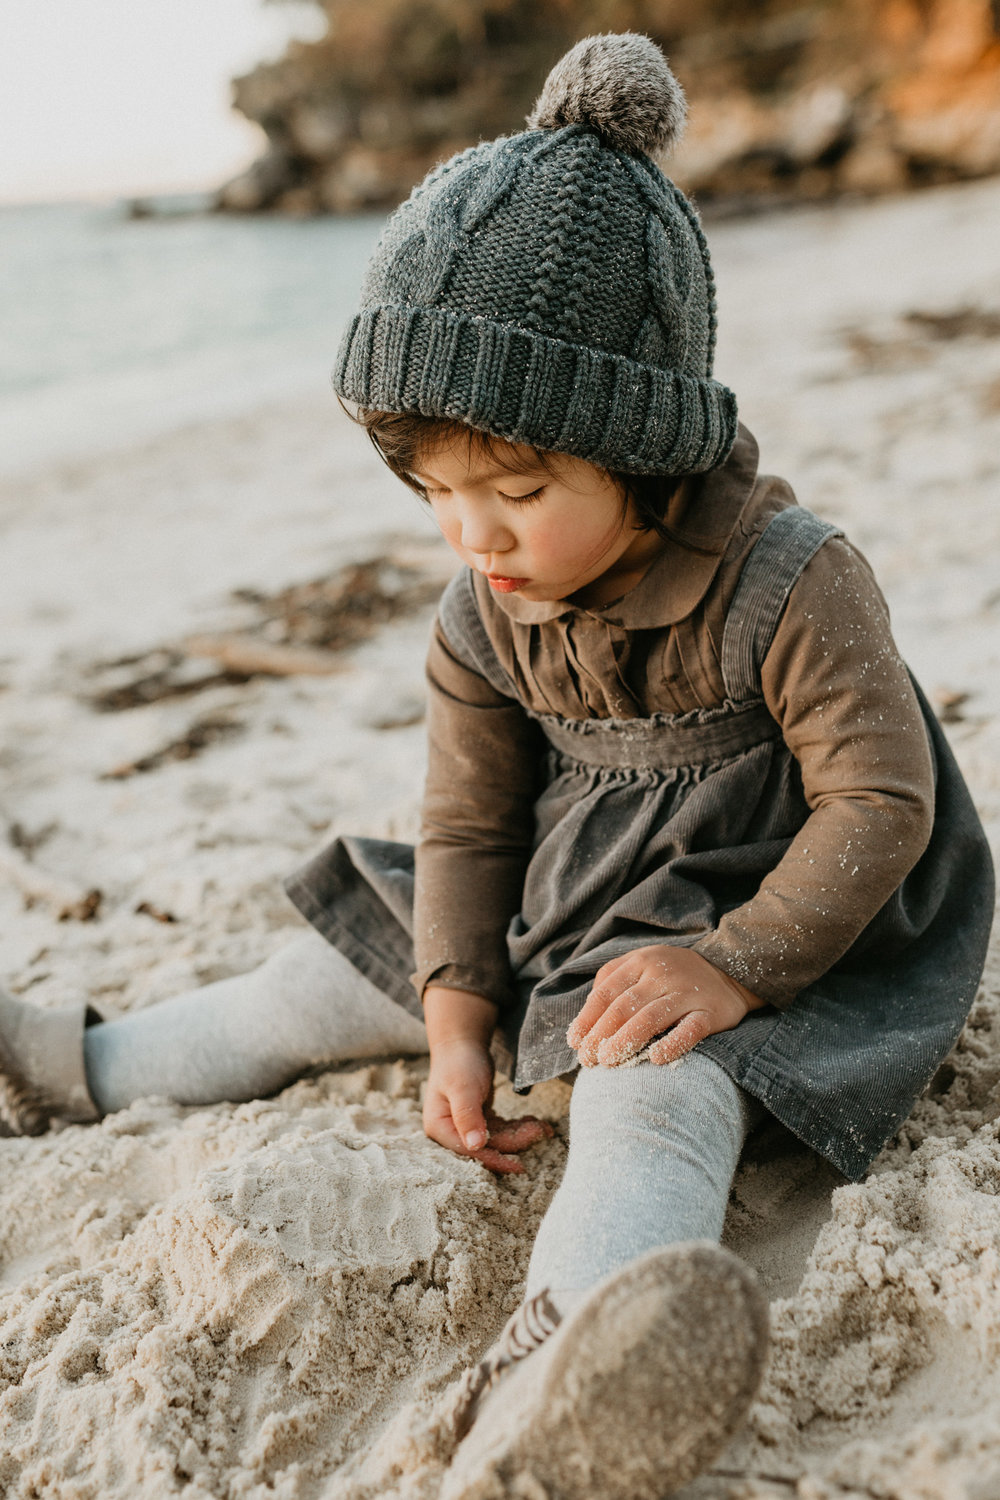 Beach Natural Children Photography Session-3.jpg